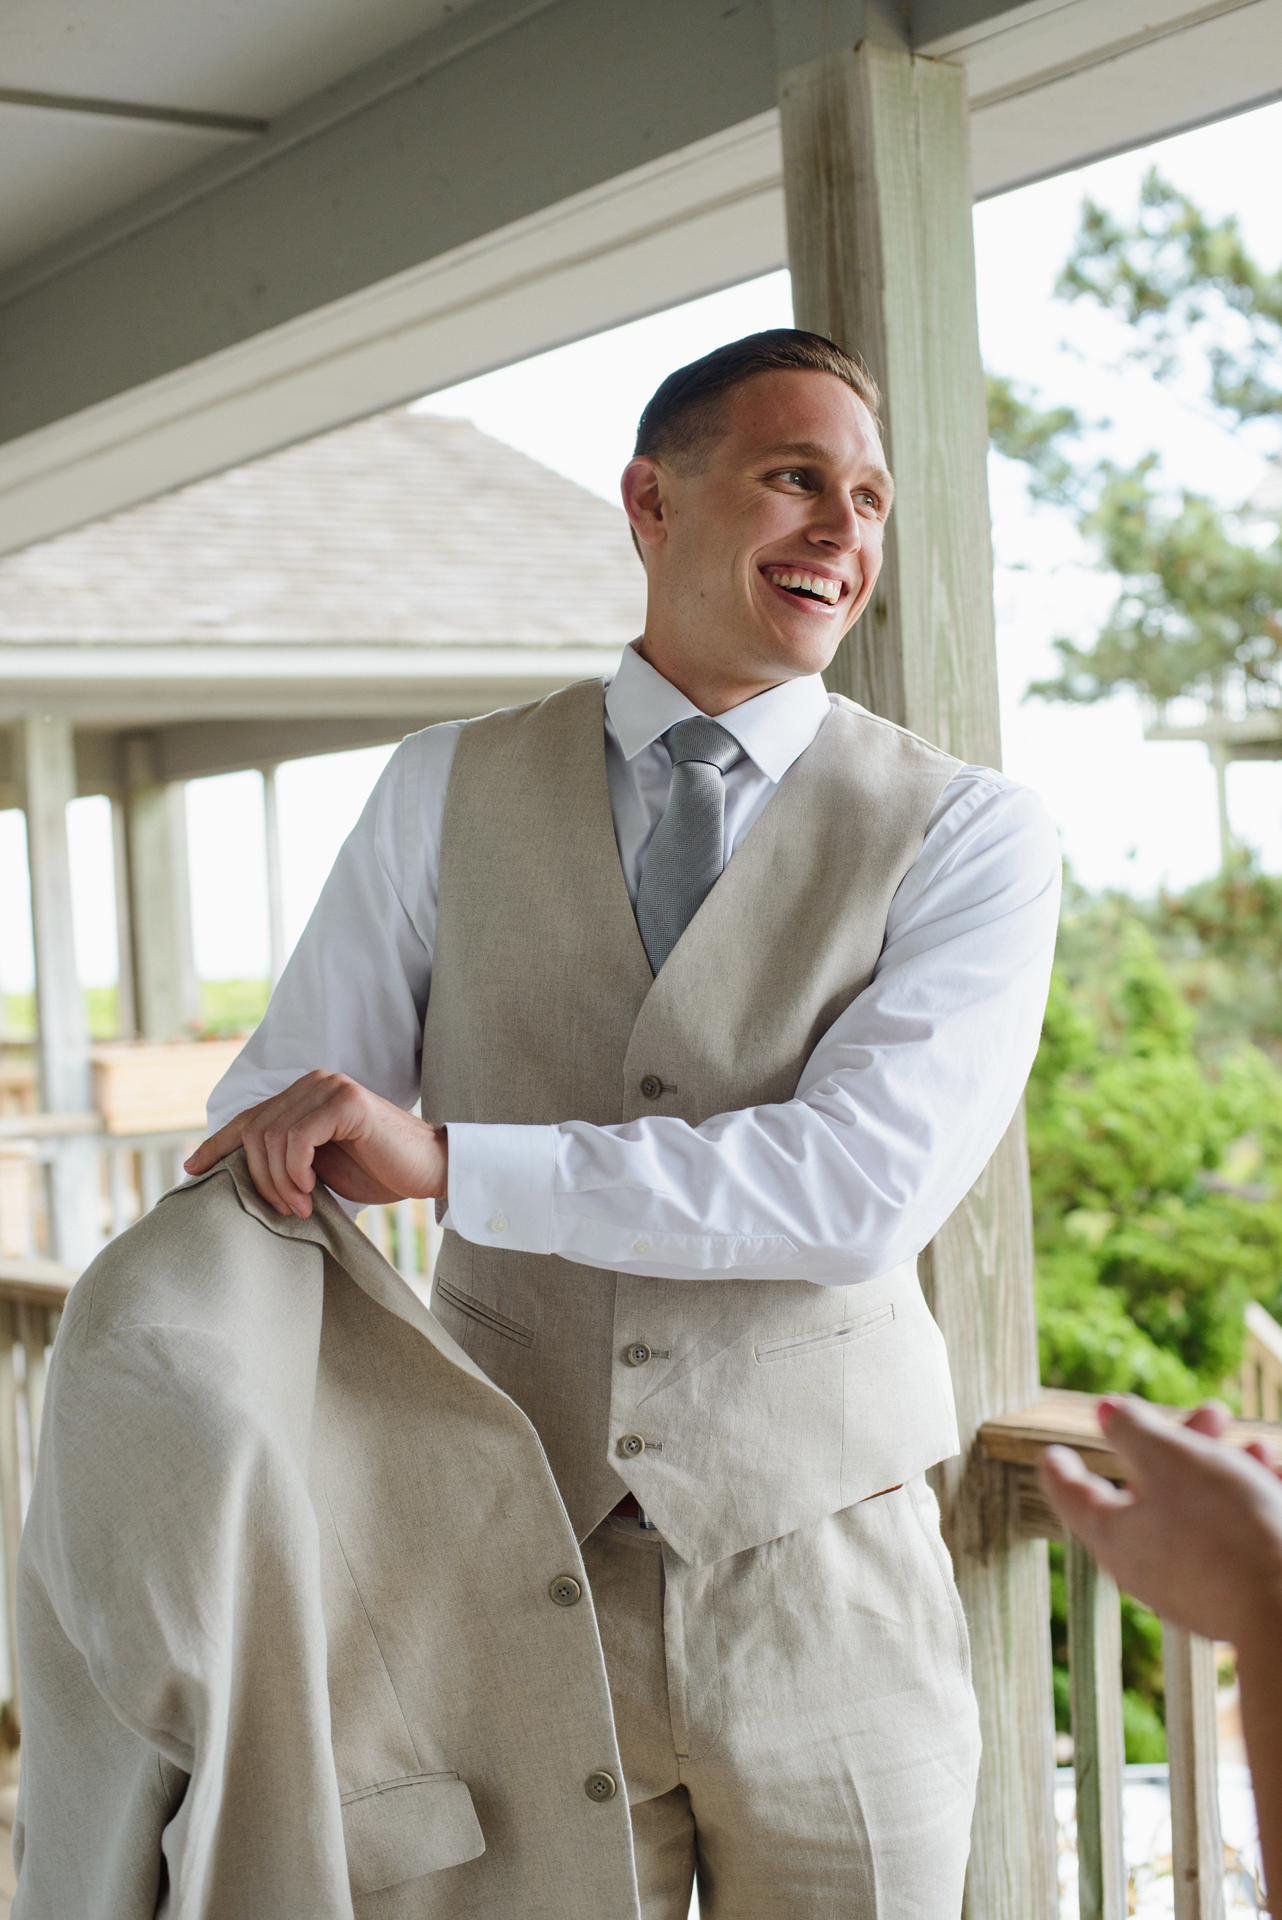 Corolla, North Carolina Elopement Picture | Groom getting ready for his elopement wedding